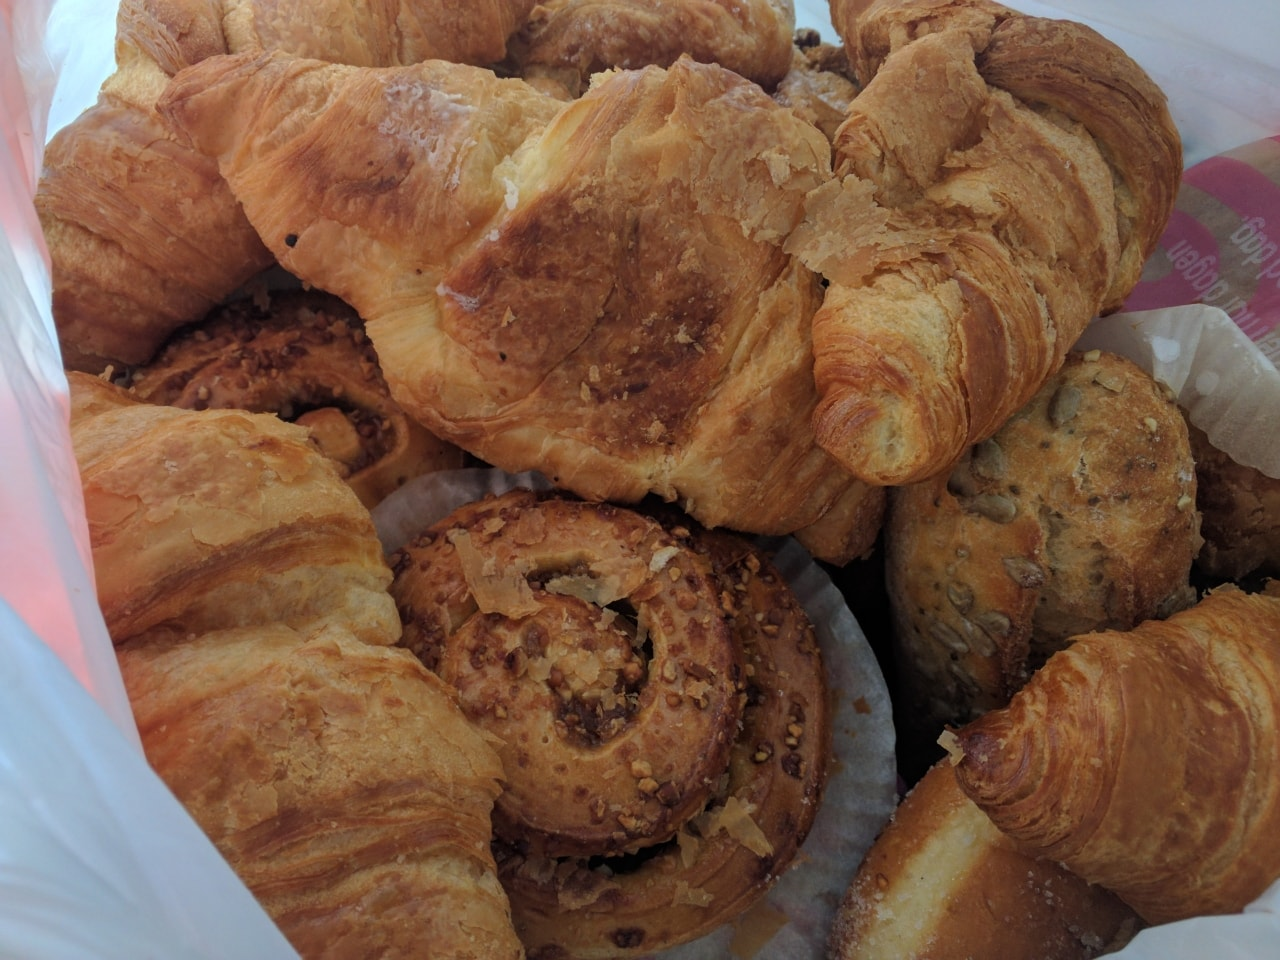 Tons of pastries